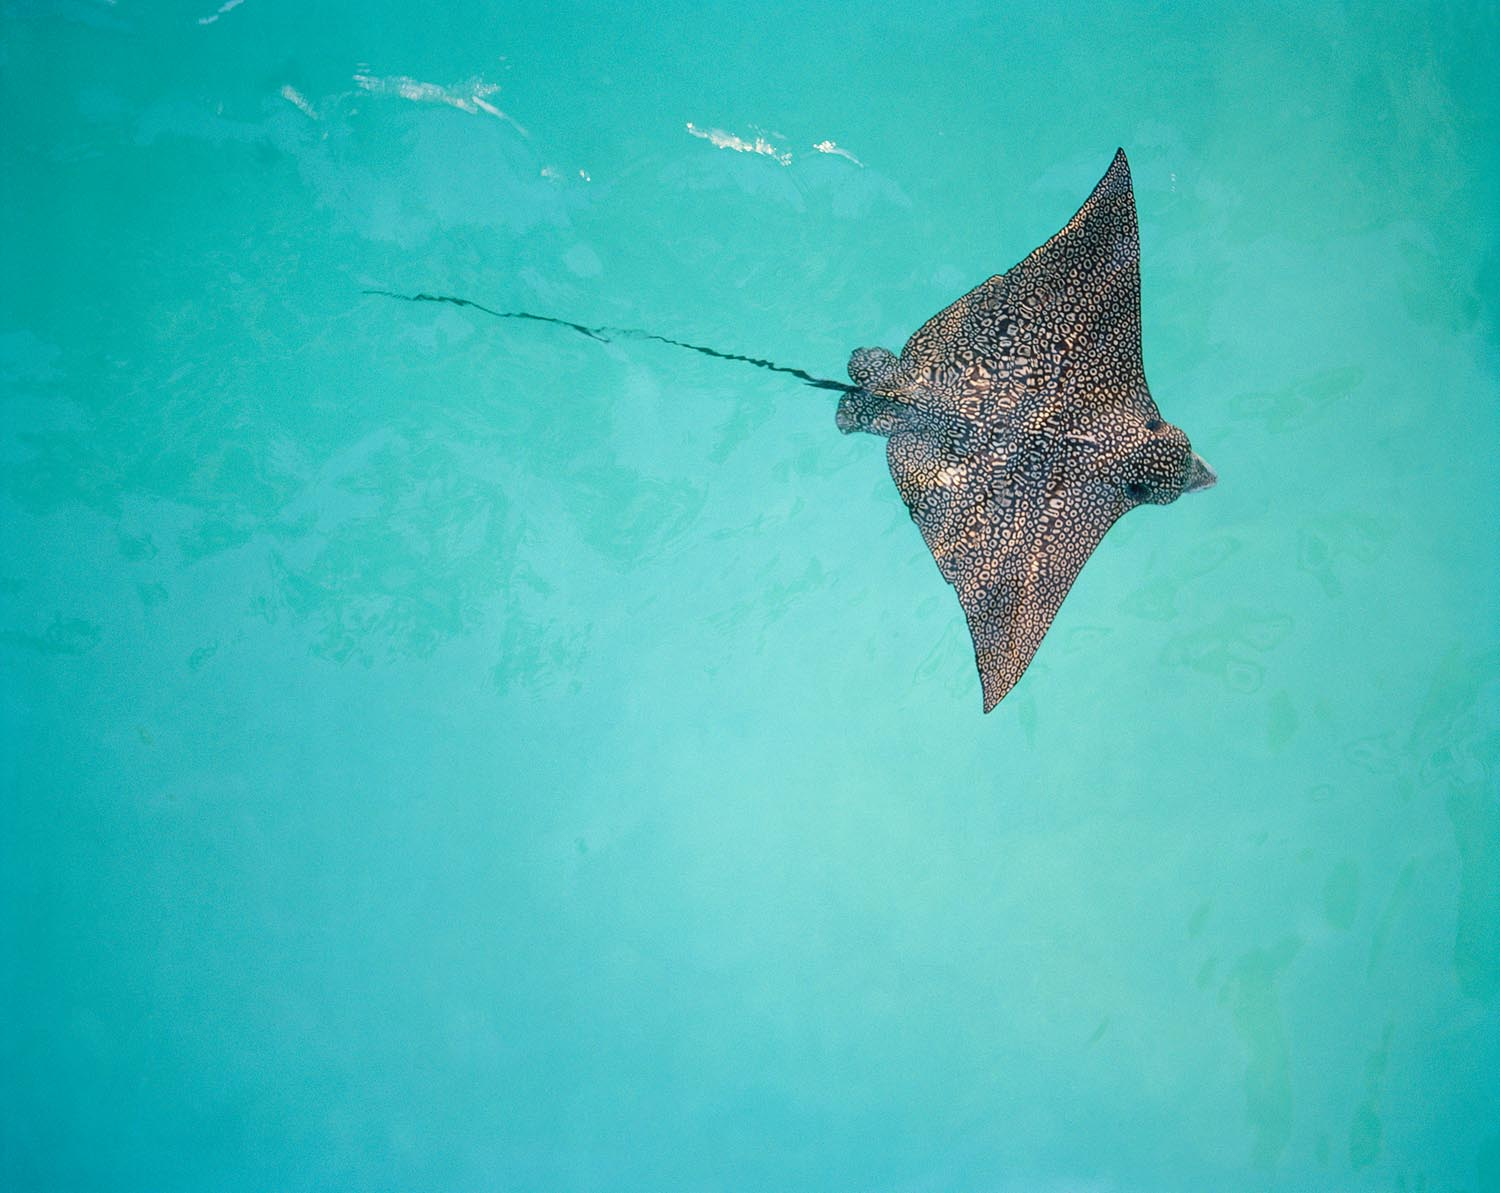 spotted-eagle-ray-2012-bora-bora-french-polynesia-sold-out